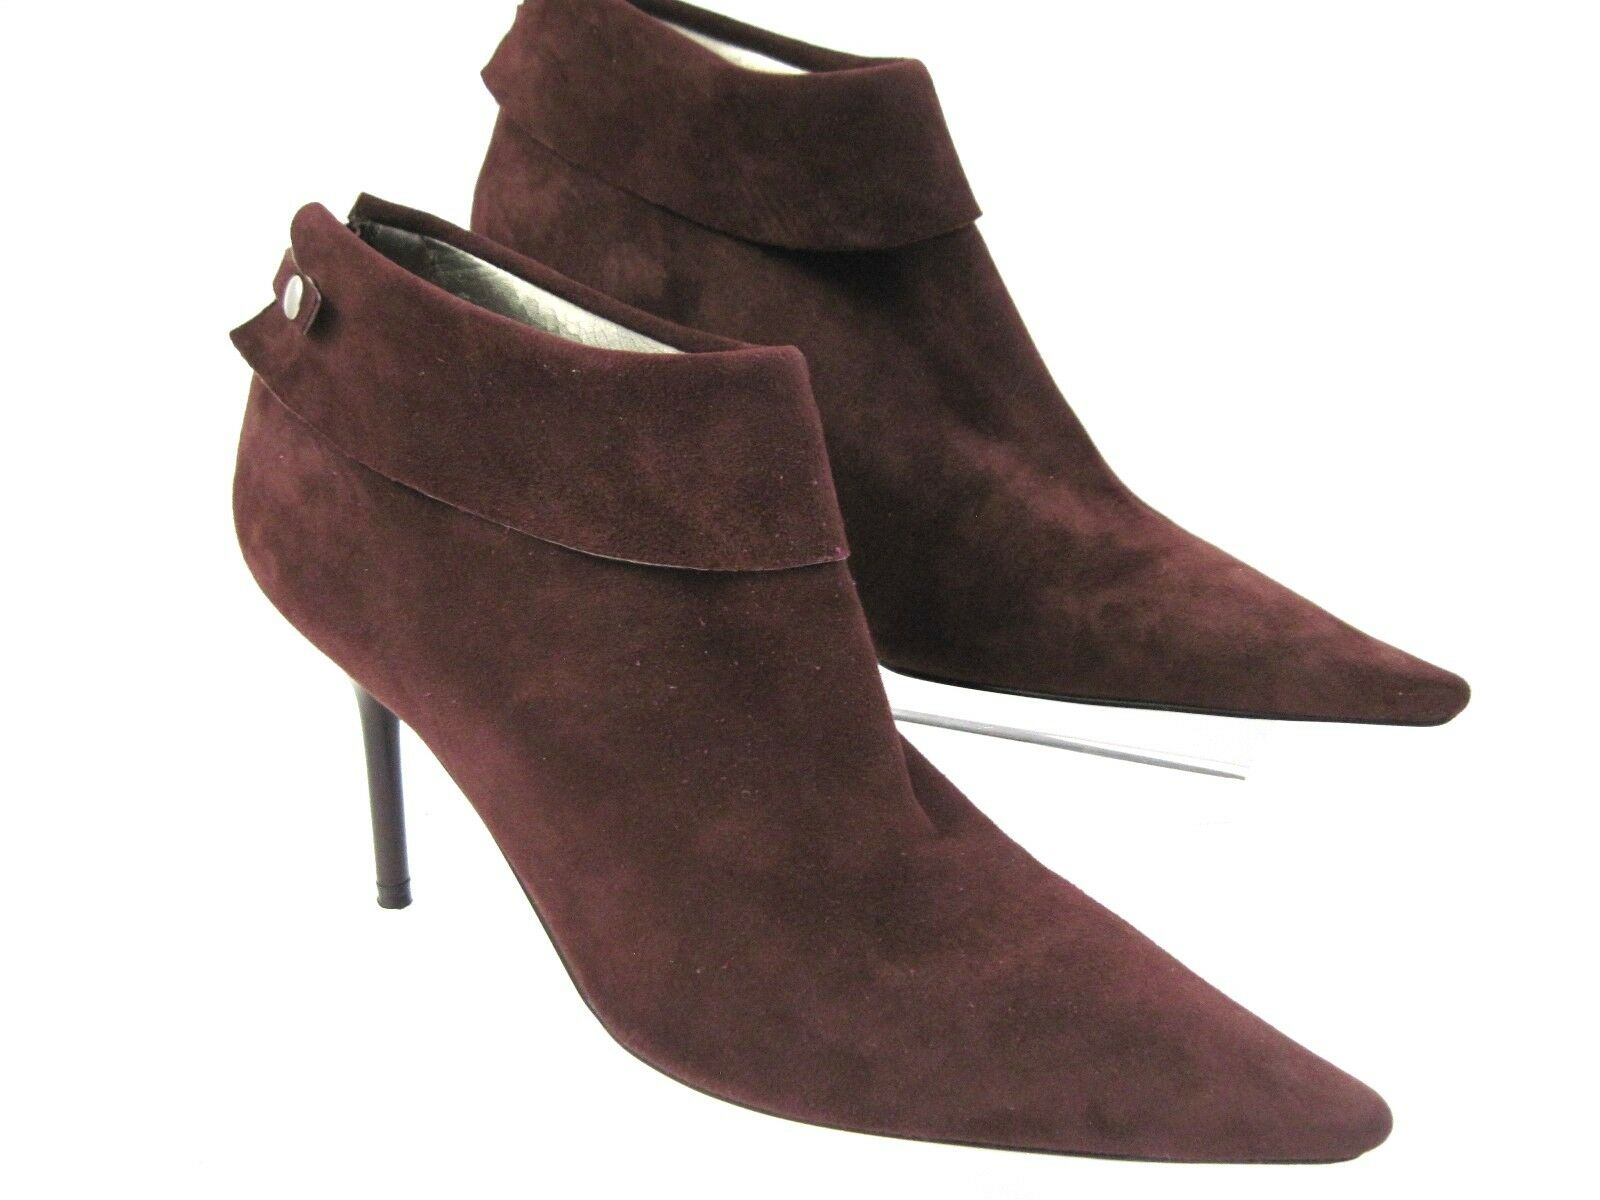 BCBGirls Brown Suede Sexy Litchy Ankle Booties Limited Edition Size 5 1 2 B